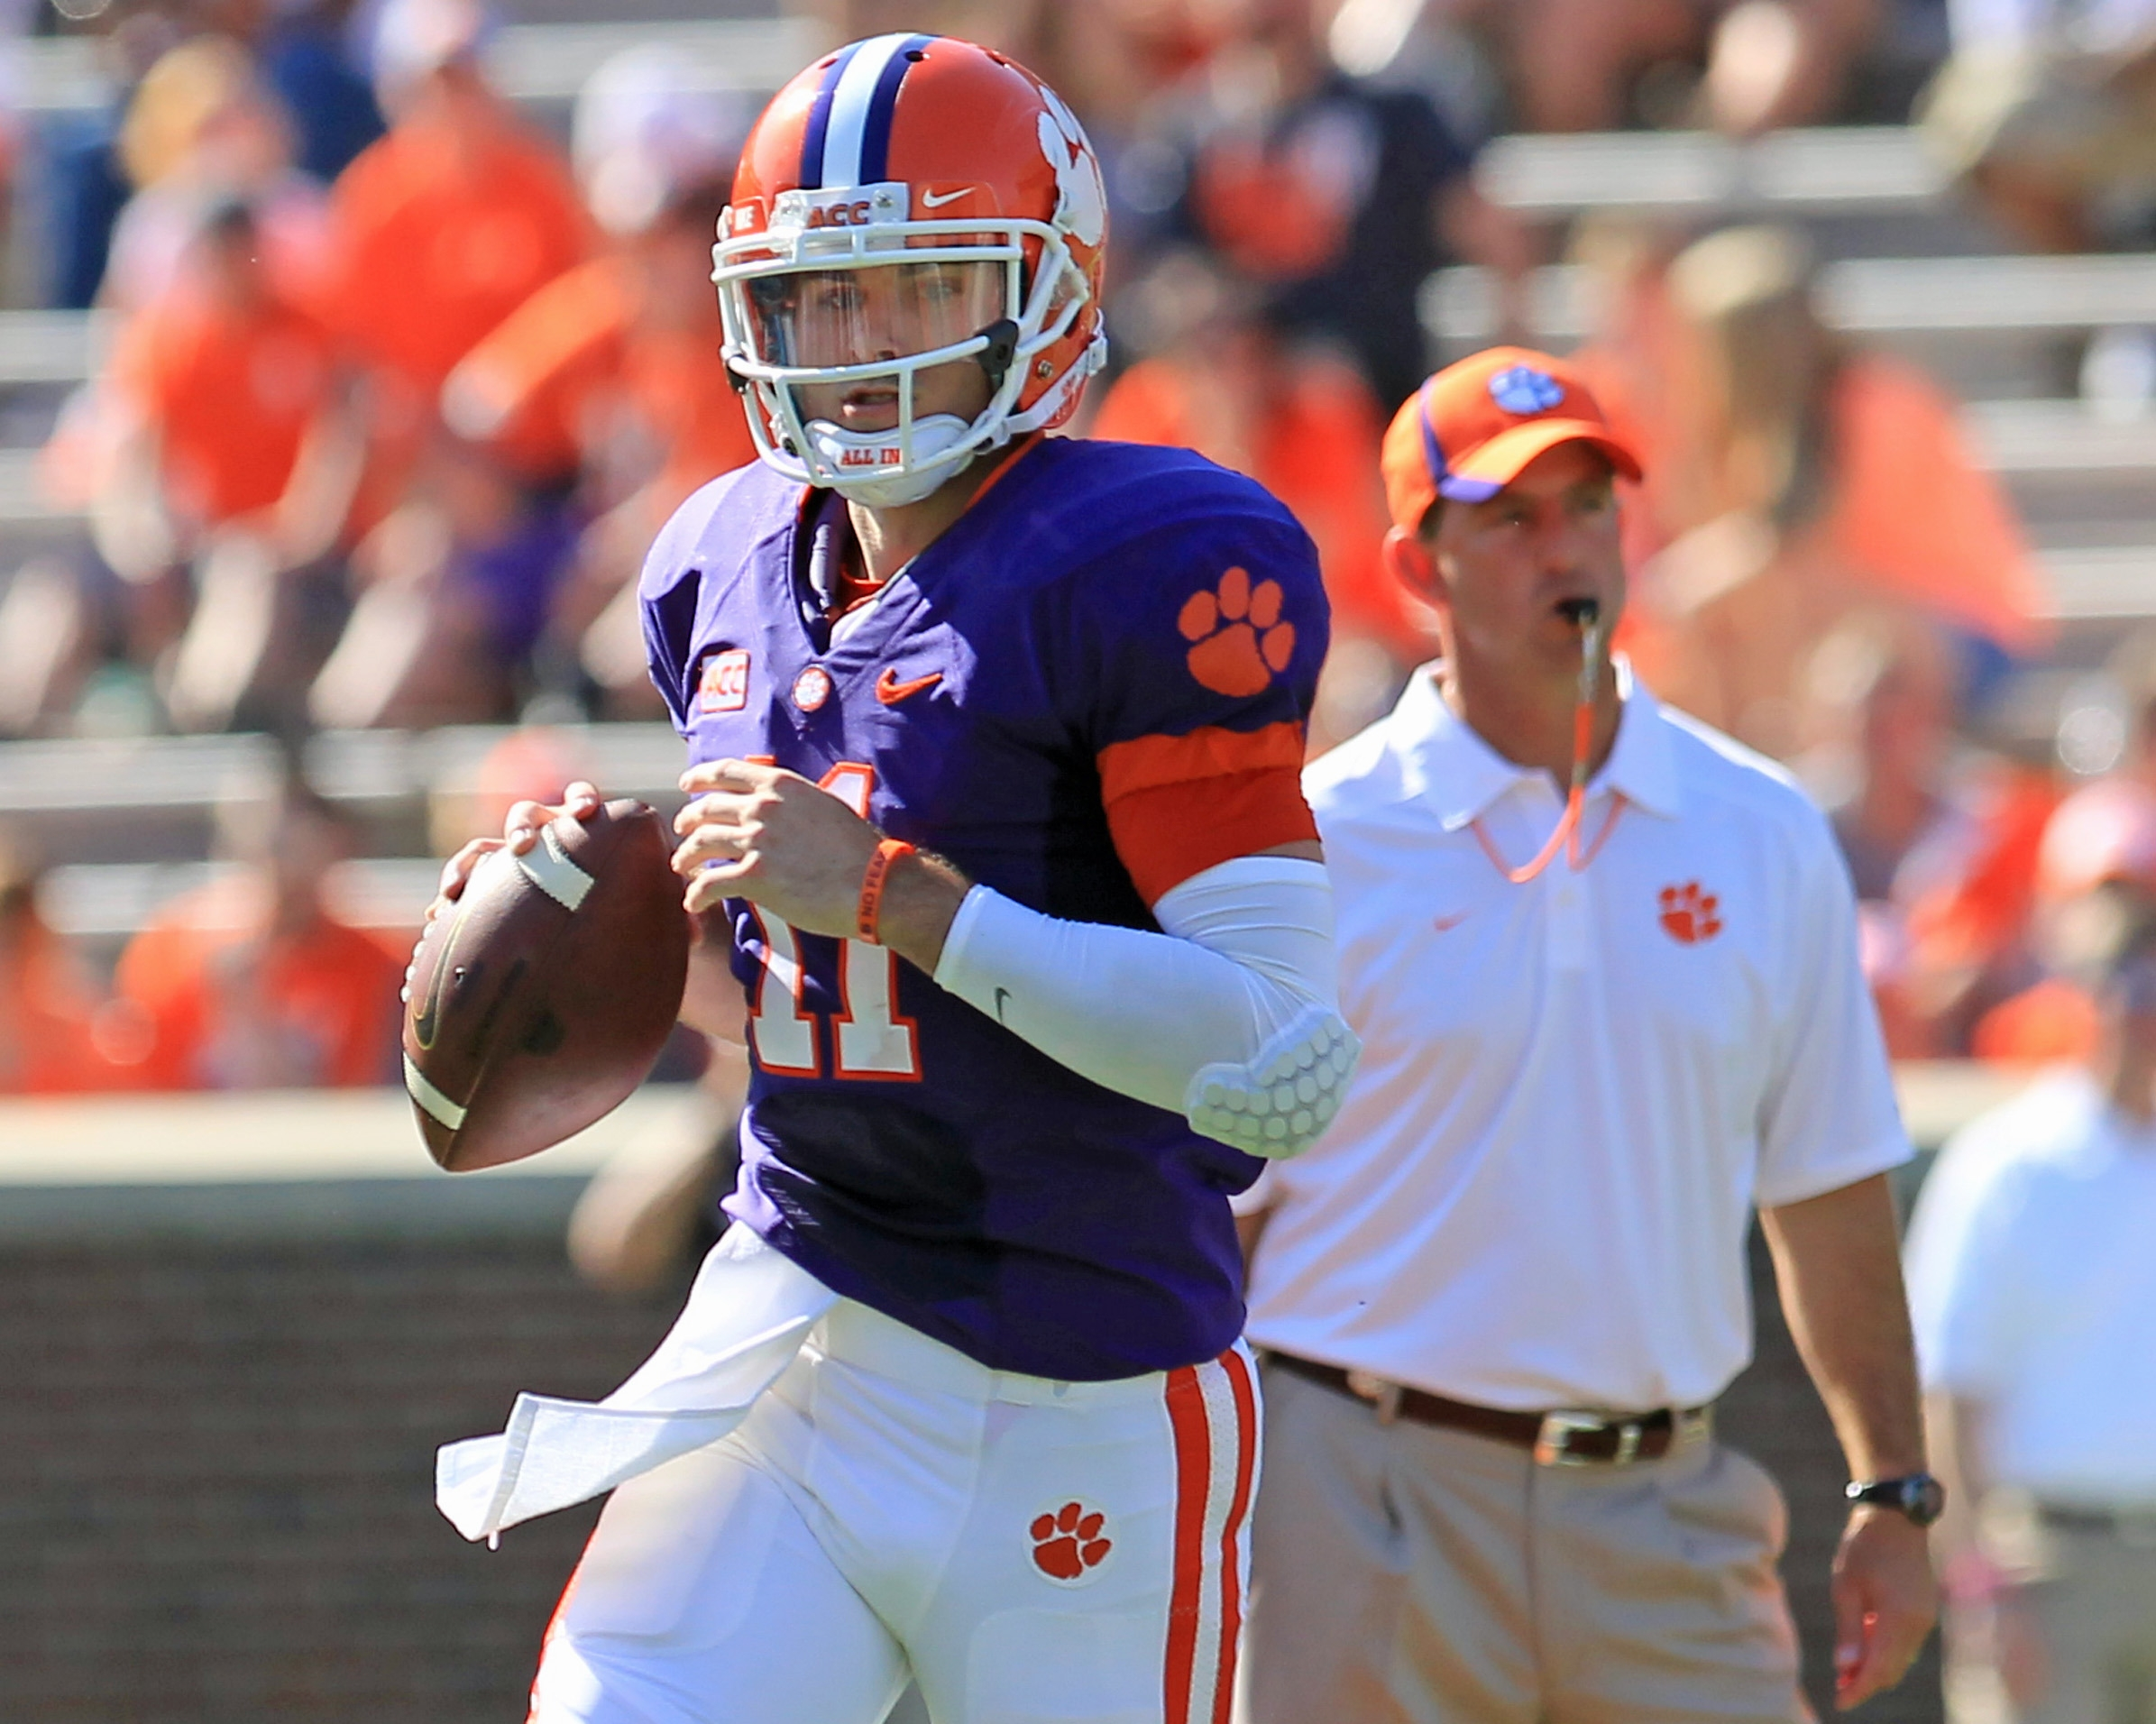 Quarterback Chad Kelly runs a play in front of Clemson head coach Dabo Swinney during the spring game on April 12.